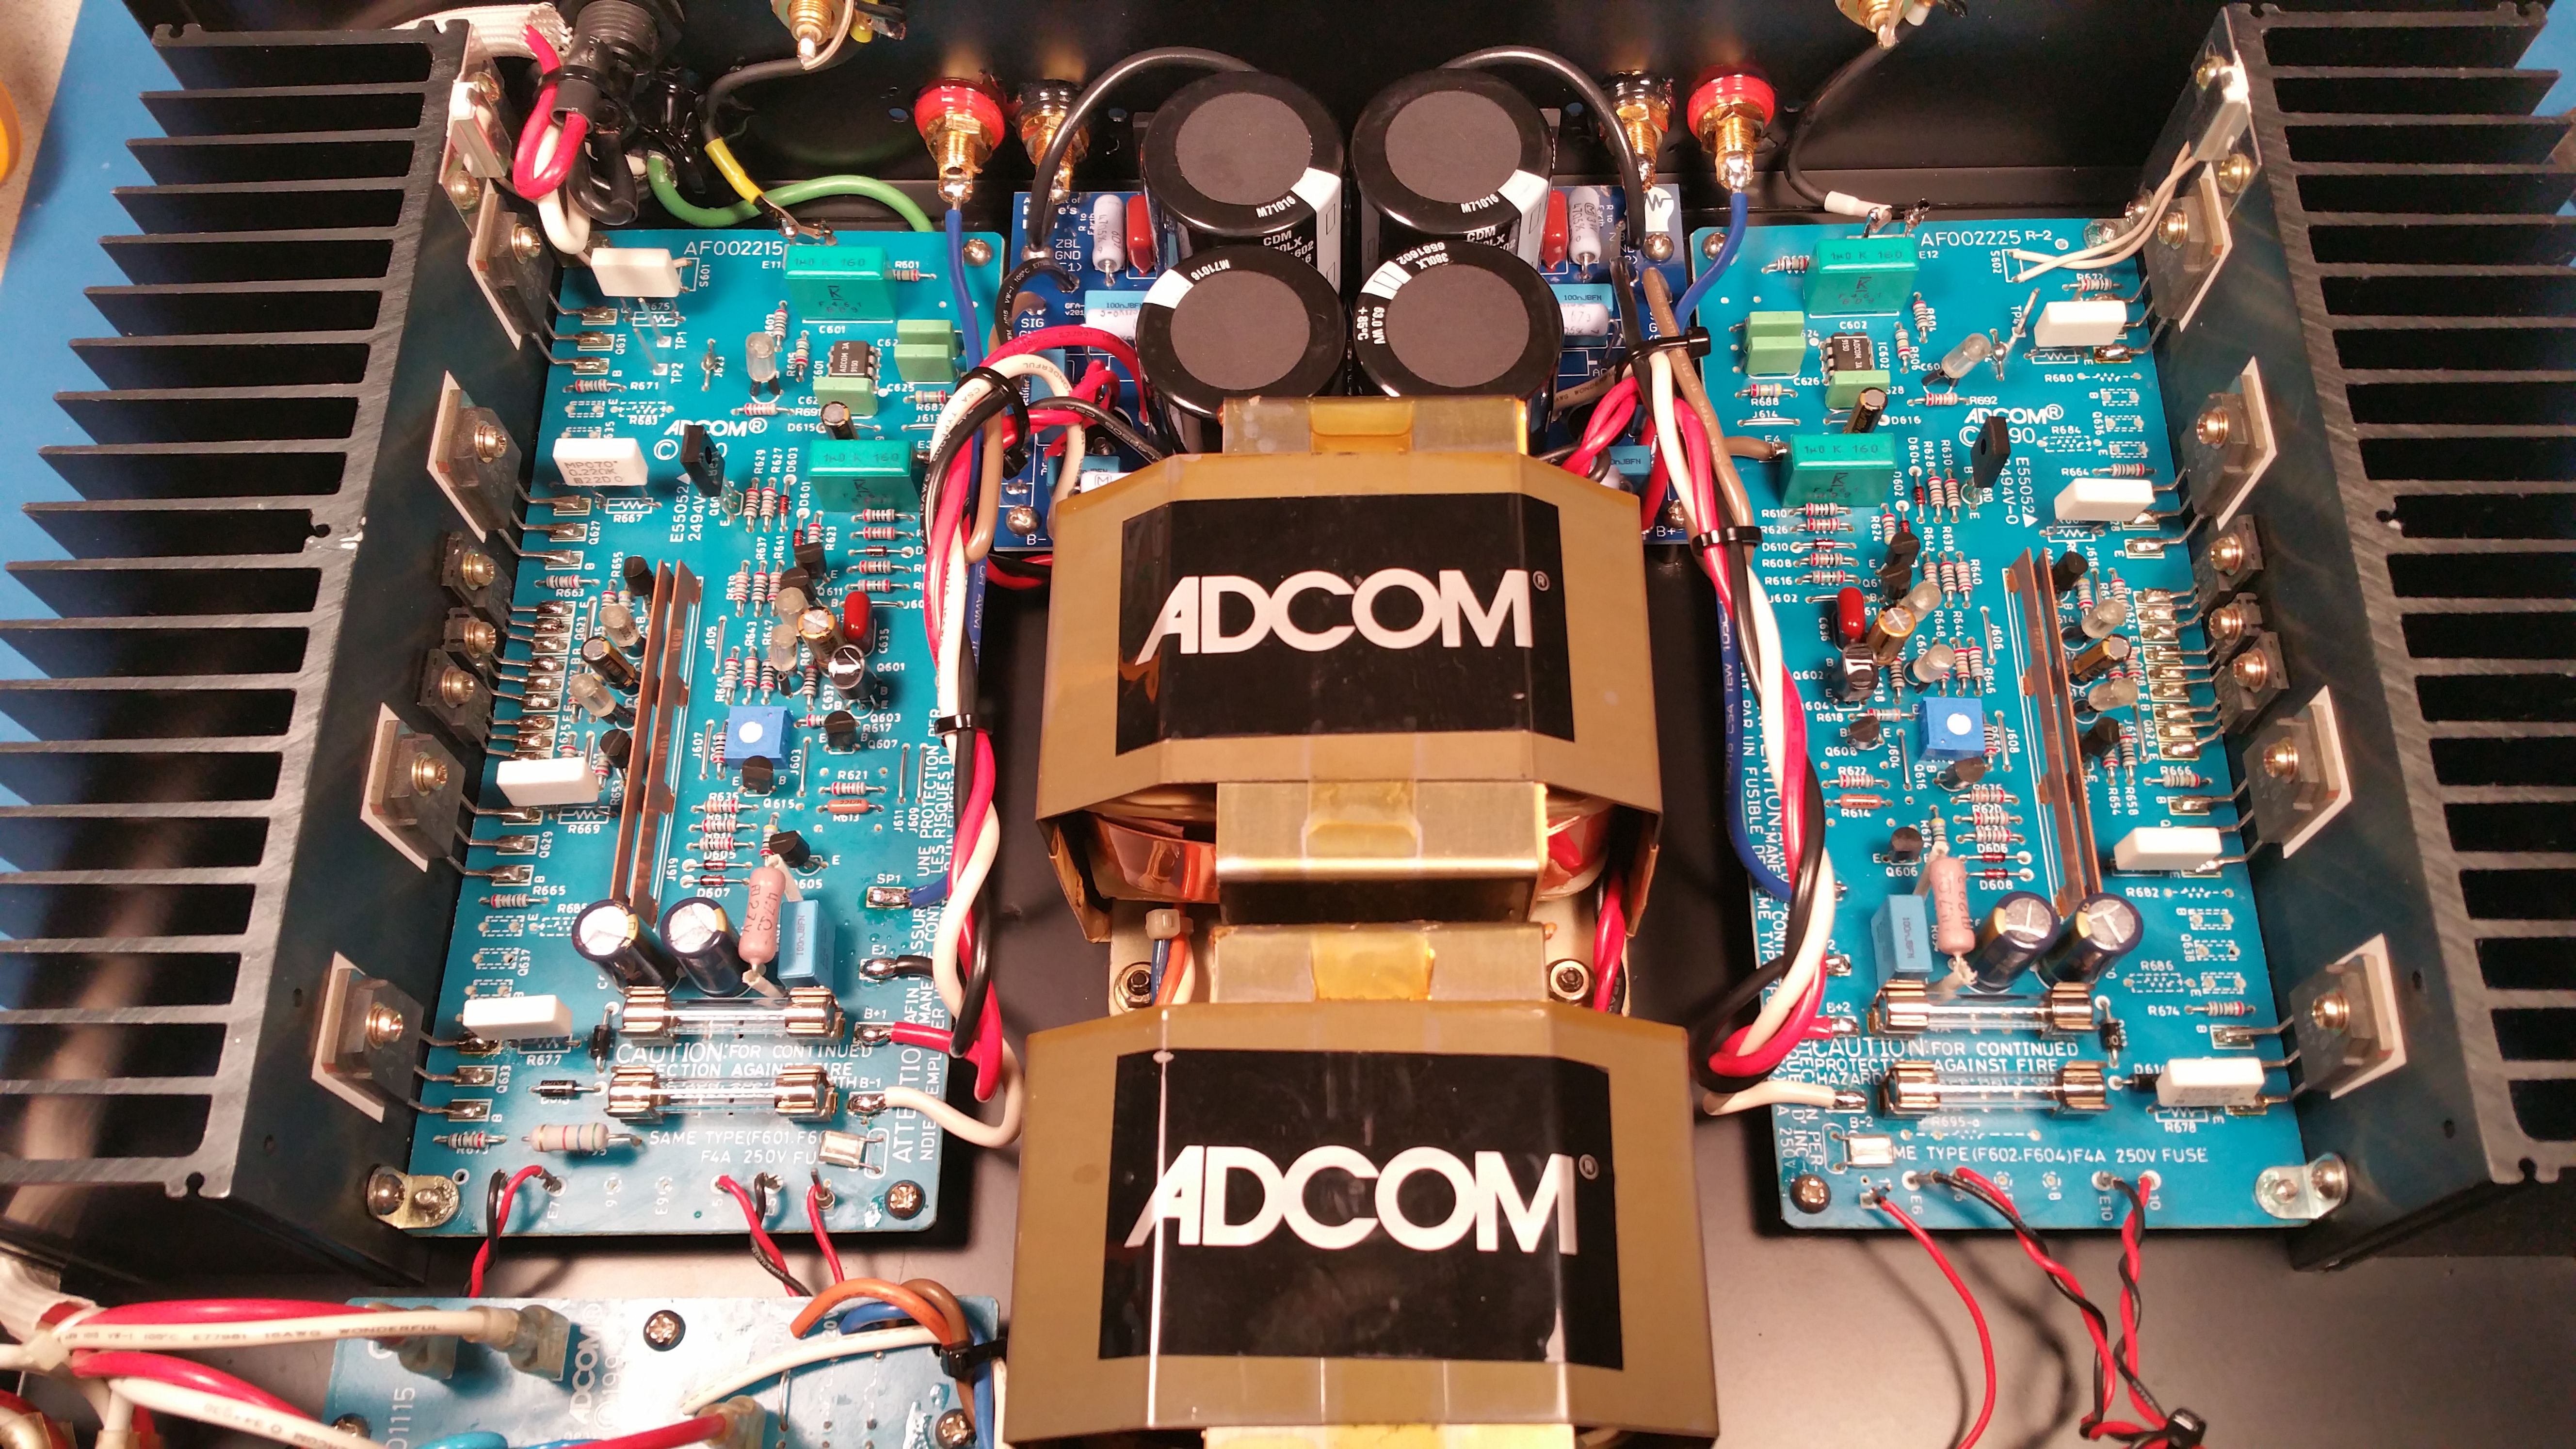 Classic Adcom Service Repair And Restoration Madison Wi Electronic Circuit Board Field Audiophile Upgrade Packages For The Gfa 535 545 555 Feature Newly Designed Power Supply Boards With Many Improvements Over Stock